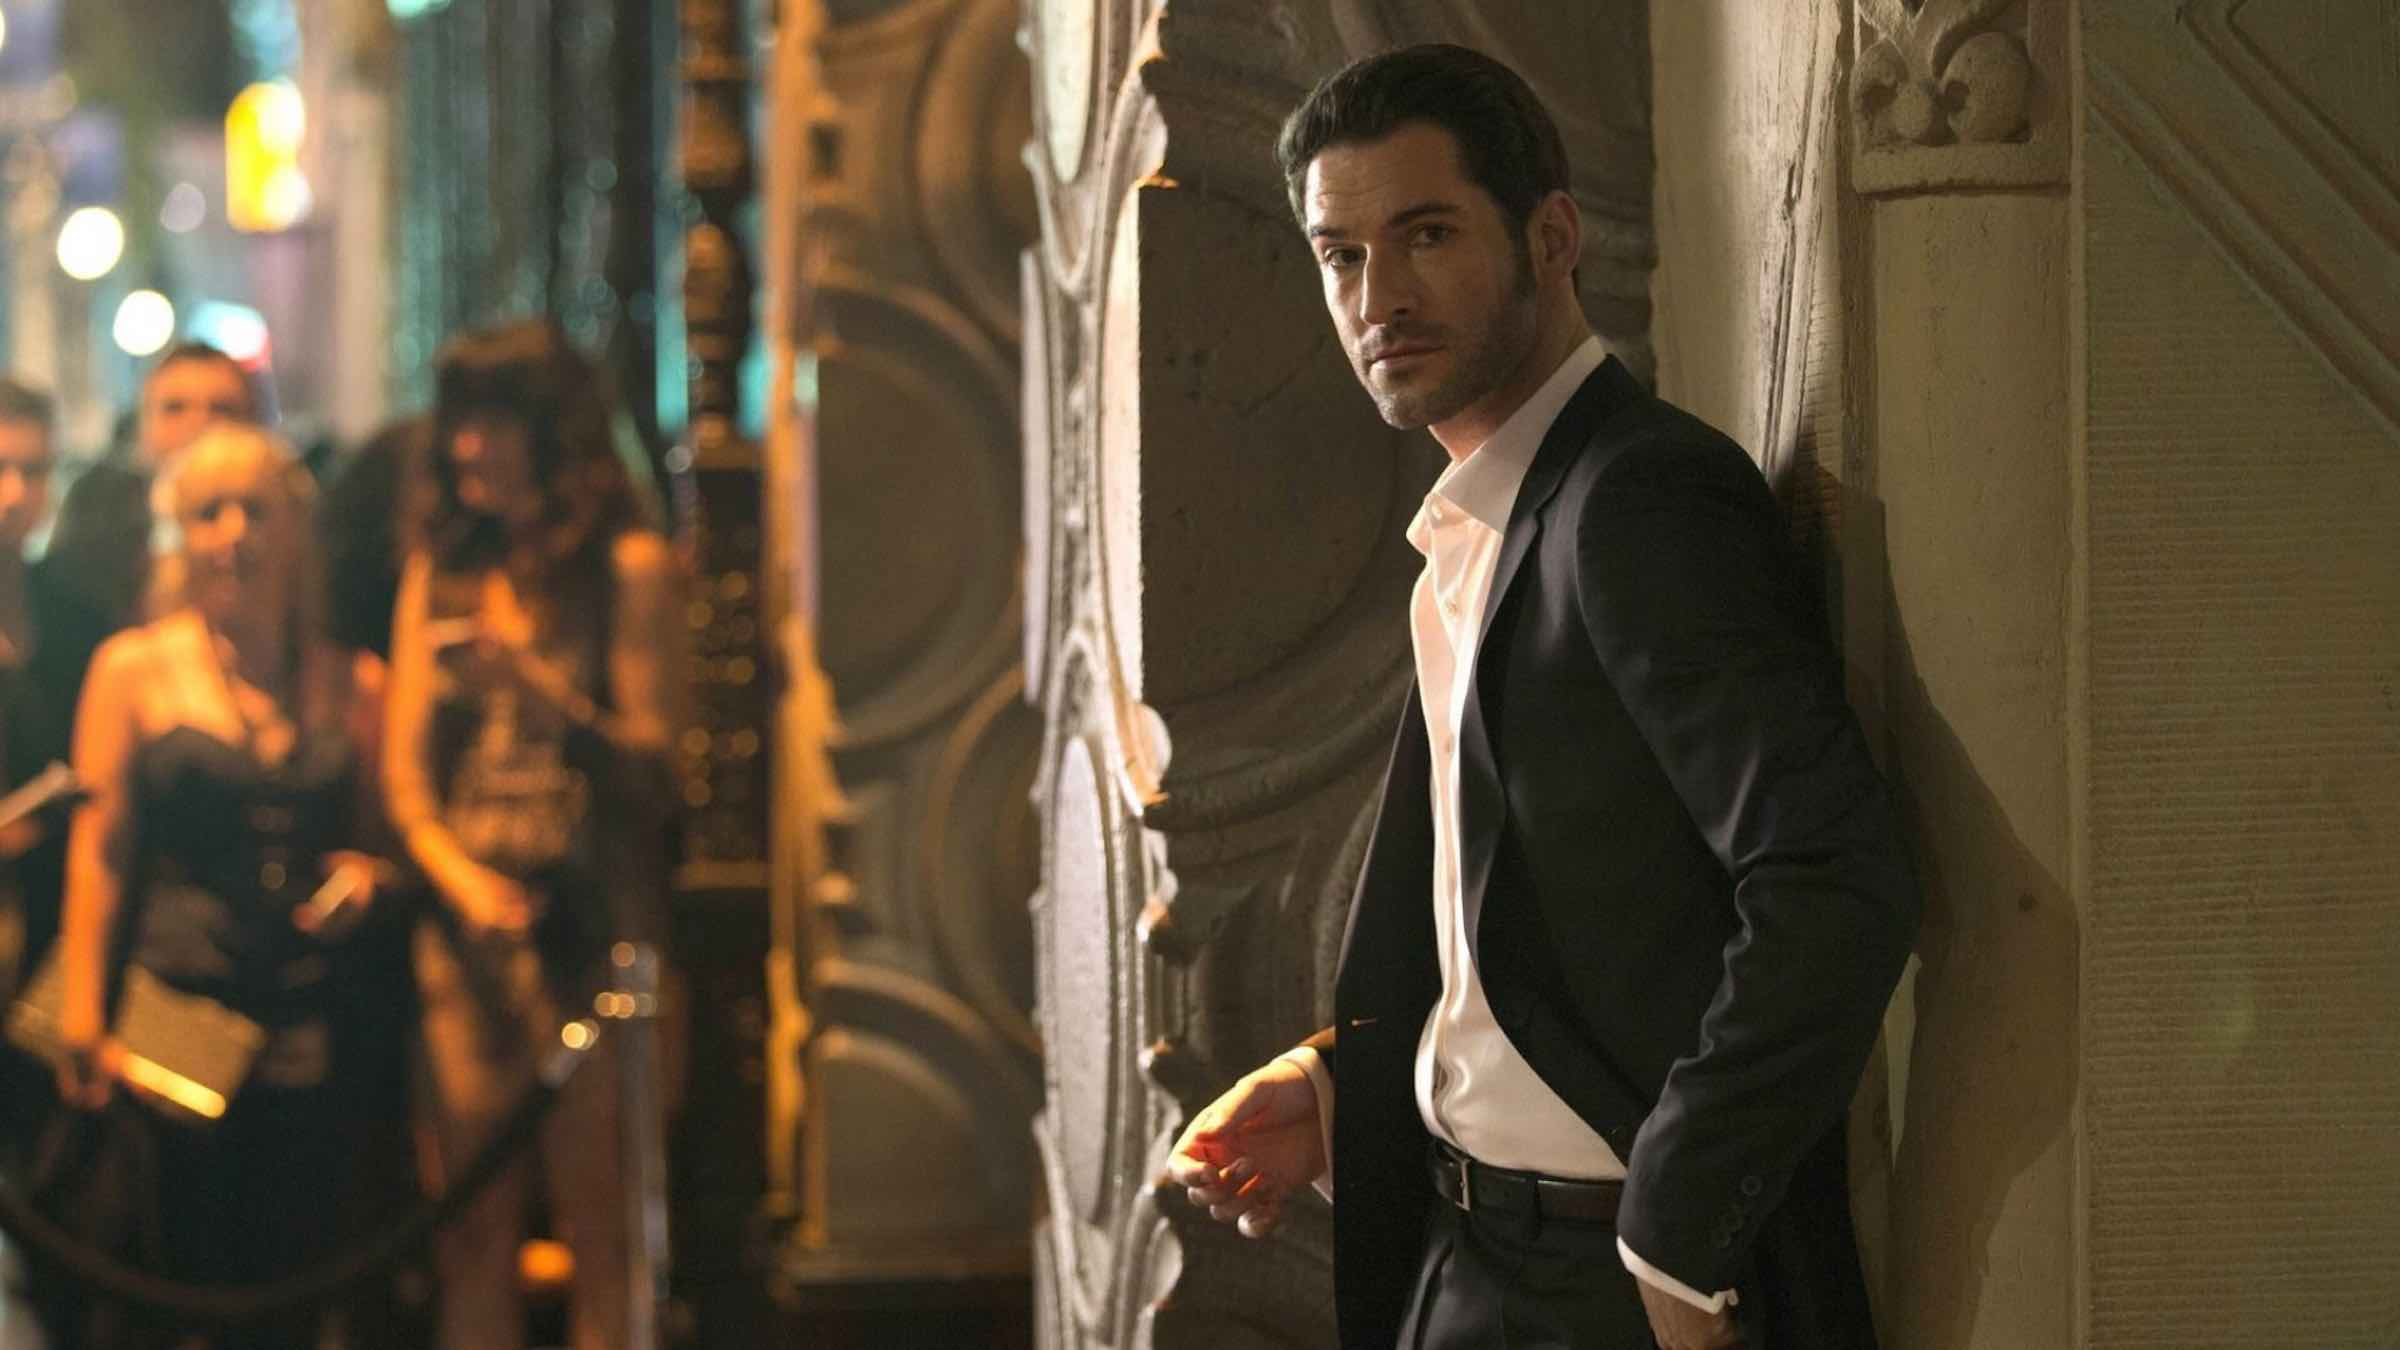 There have been rumblings over the past couple of weeks that the 'Lucifer' TV show may score a sixth season. Here's the scoop on the devil's comeback.